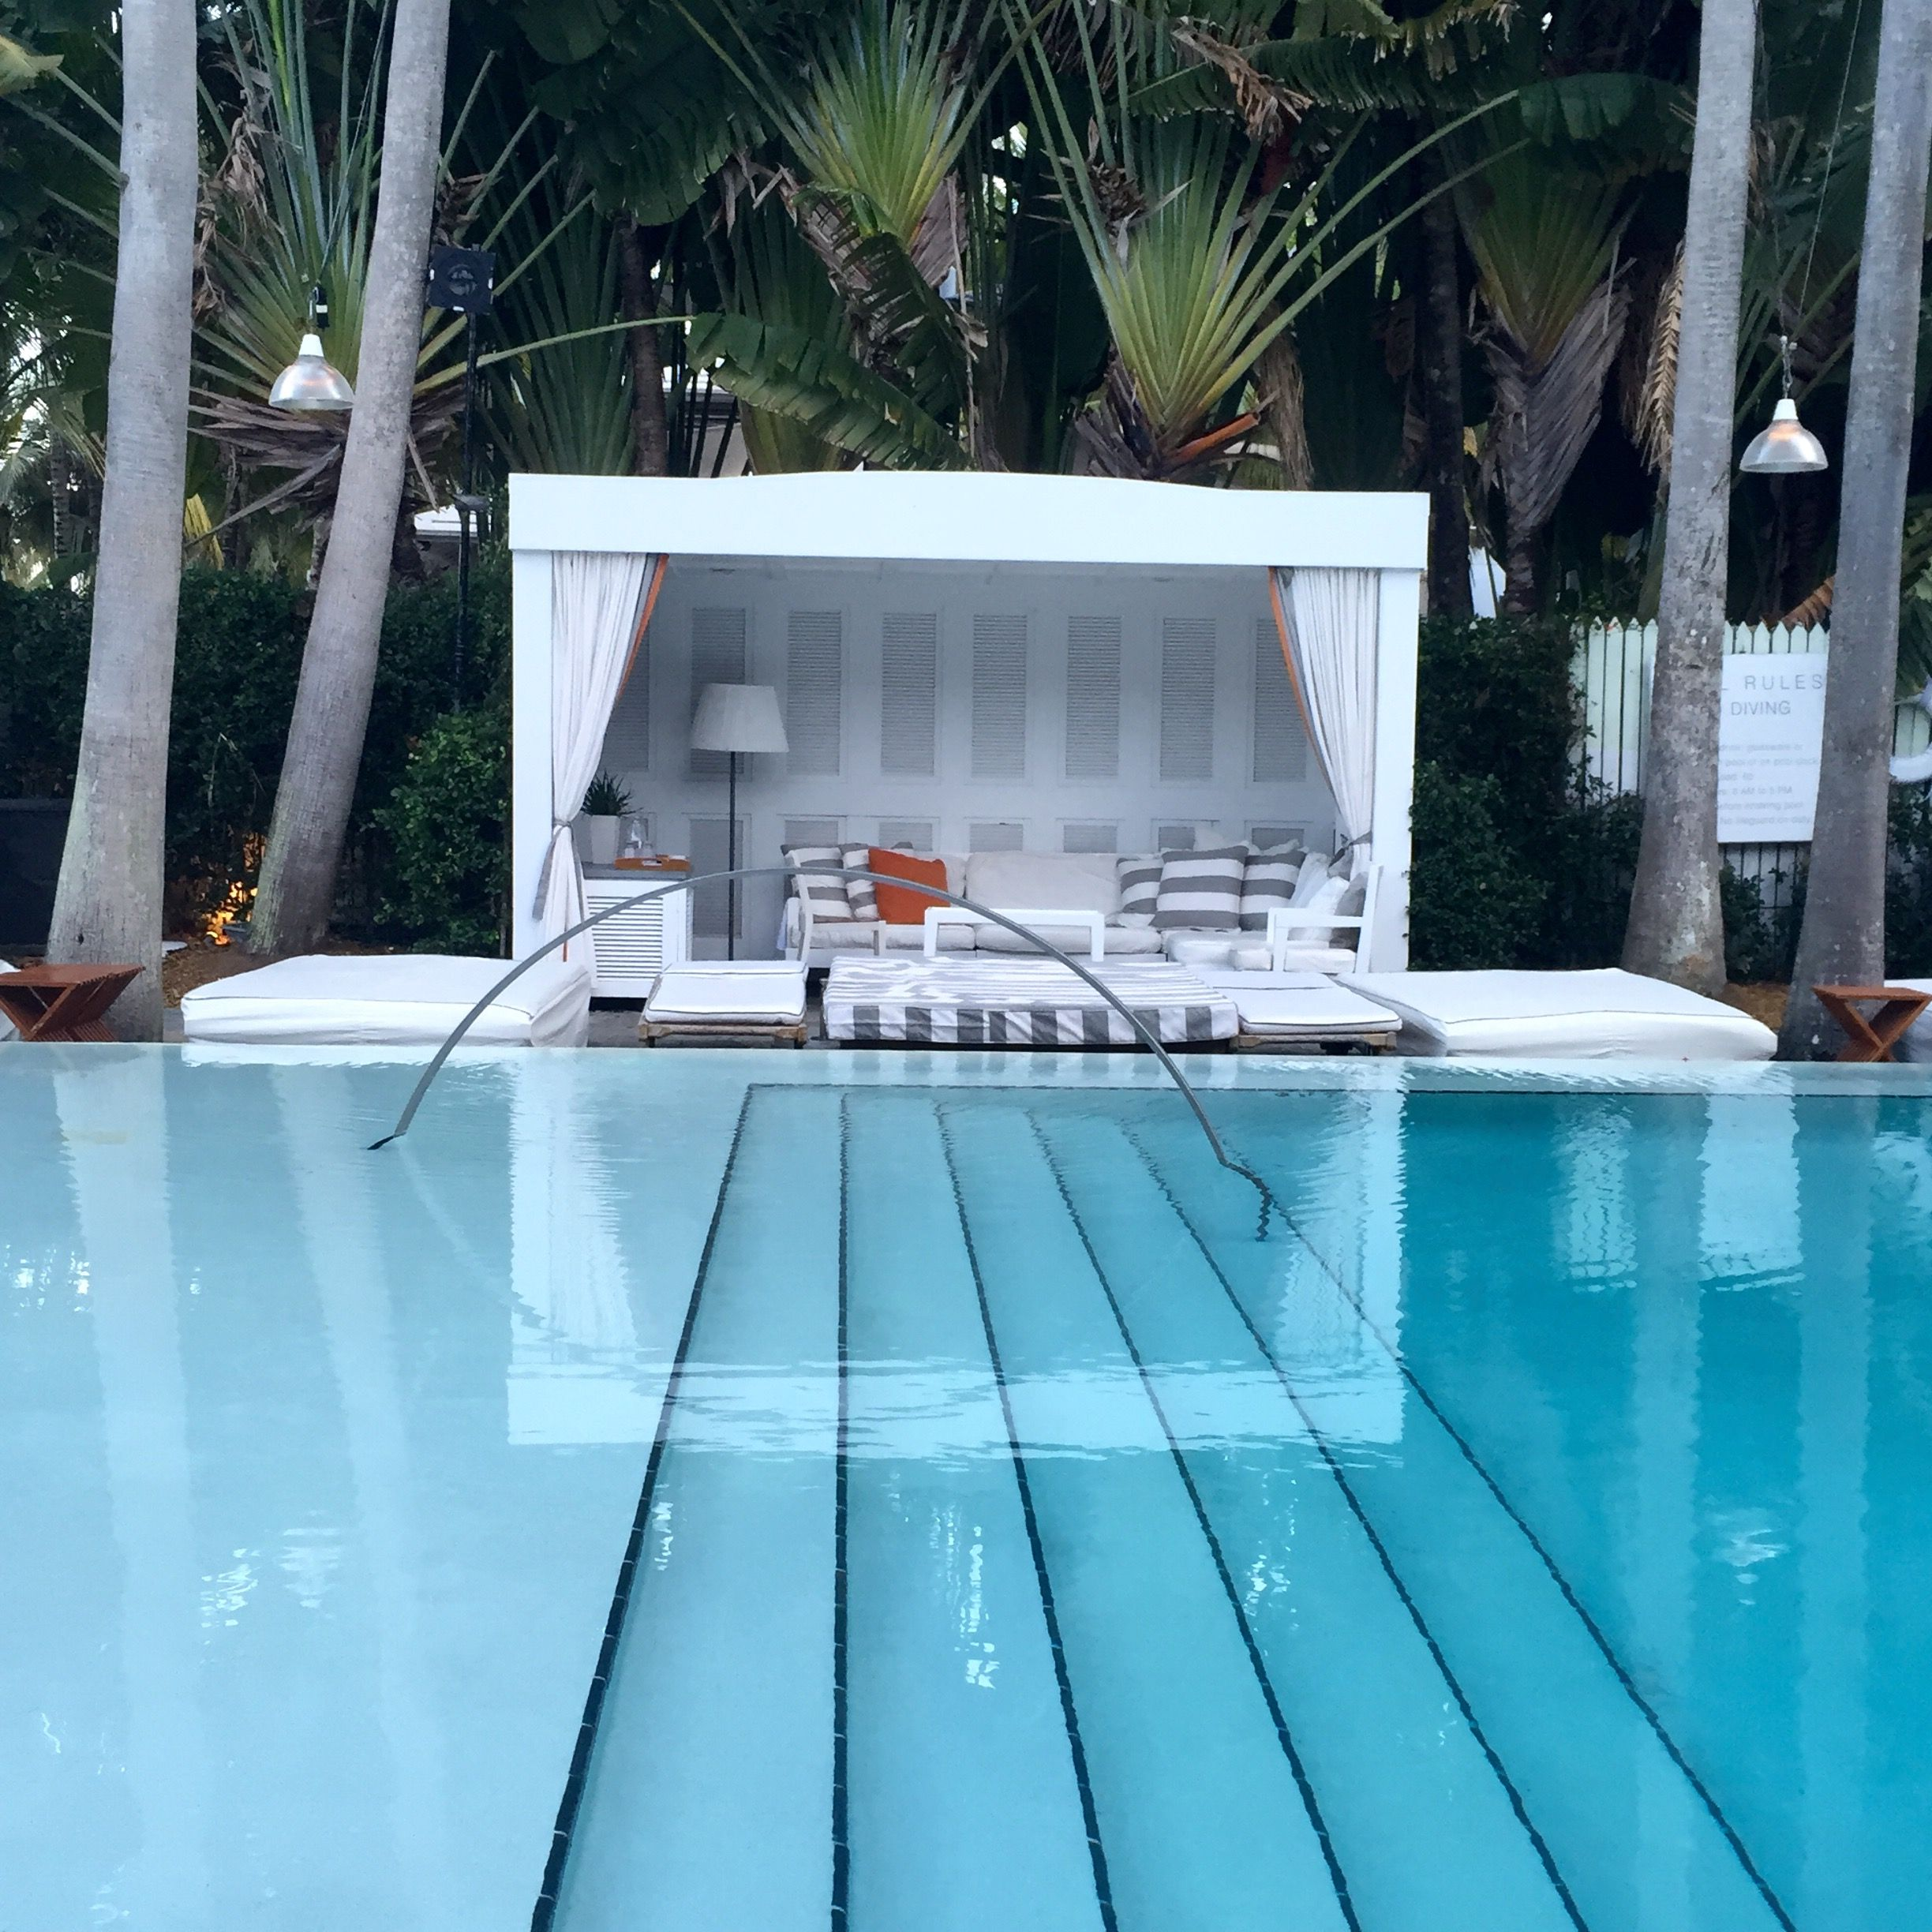 Cabana By The Pool At The Delano In Miami Pool Houses Pool